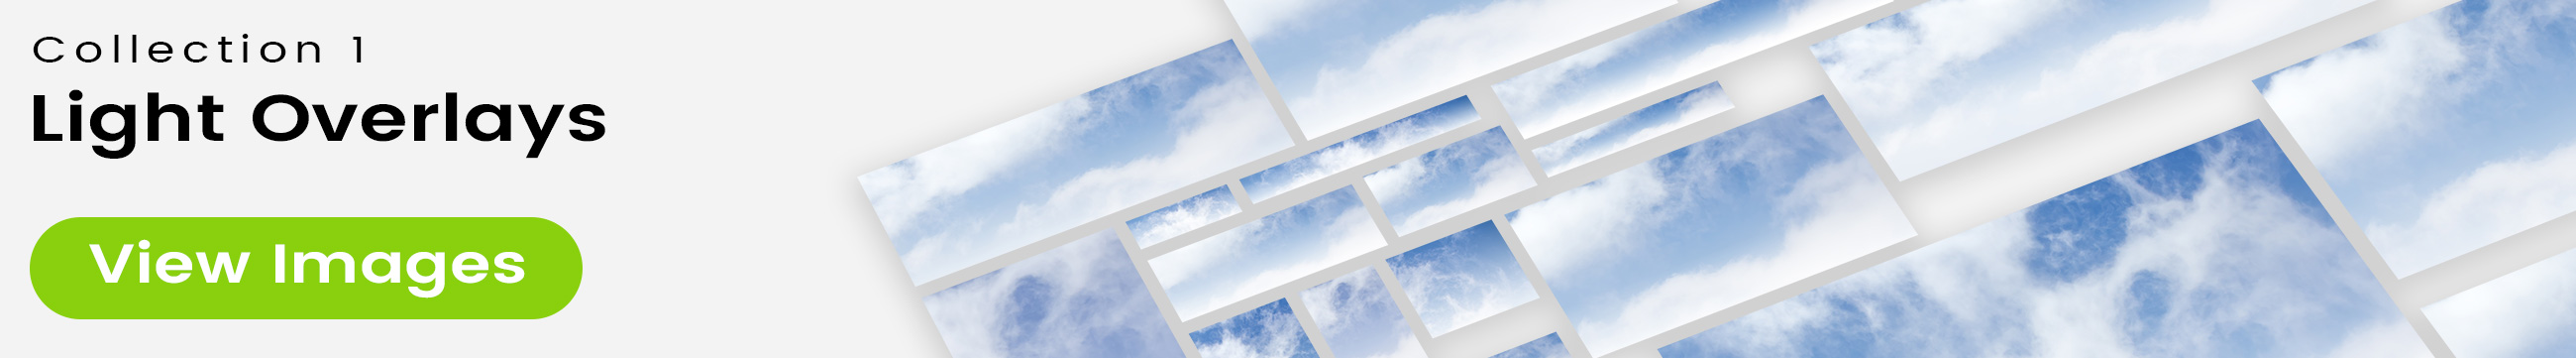 See 25 bonus images included with clouds stock image 9482. Collection 1 of 4 features a light overlay design.